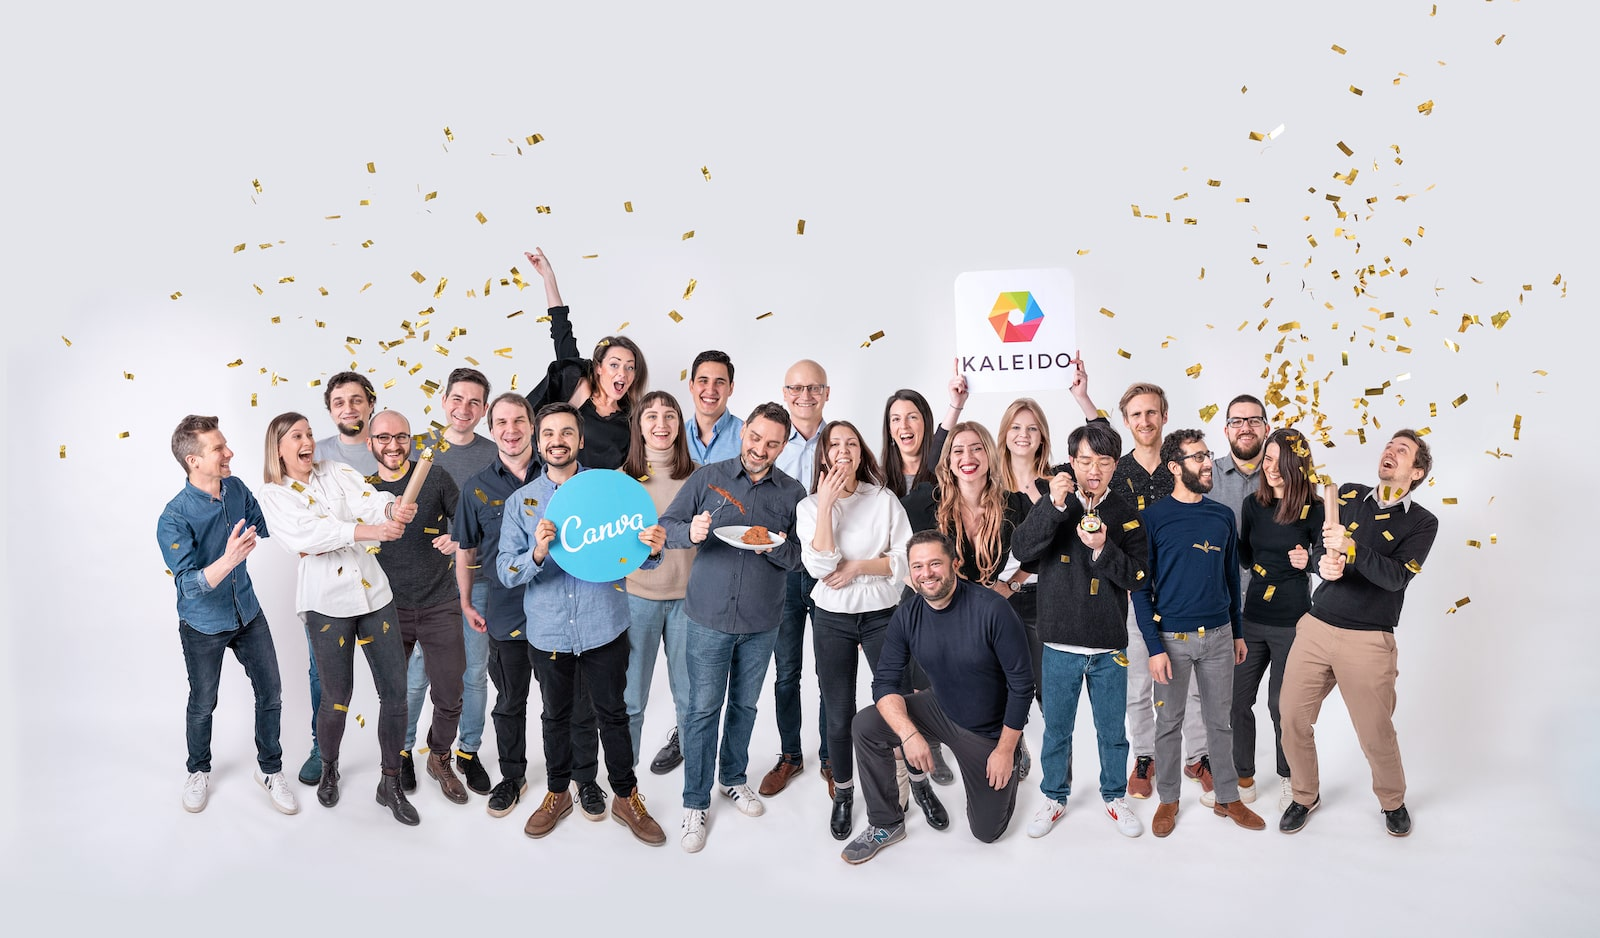 The team at kaleido celebrating their acquisition - each member has been digitally added.